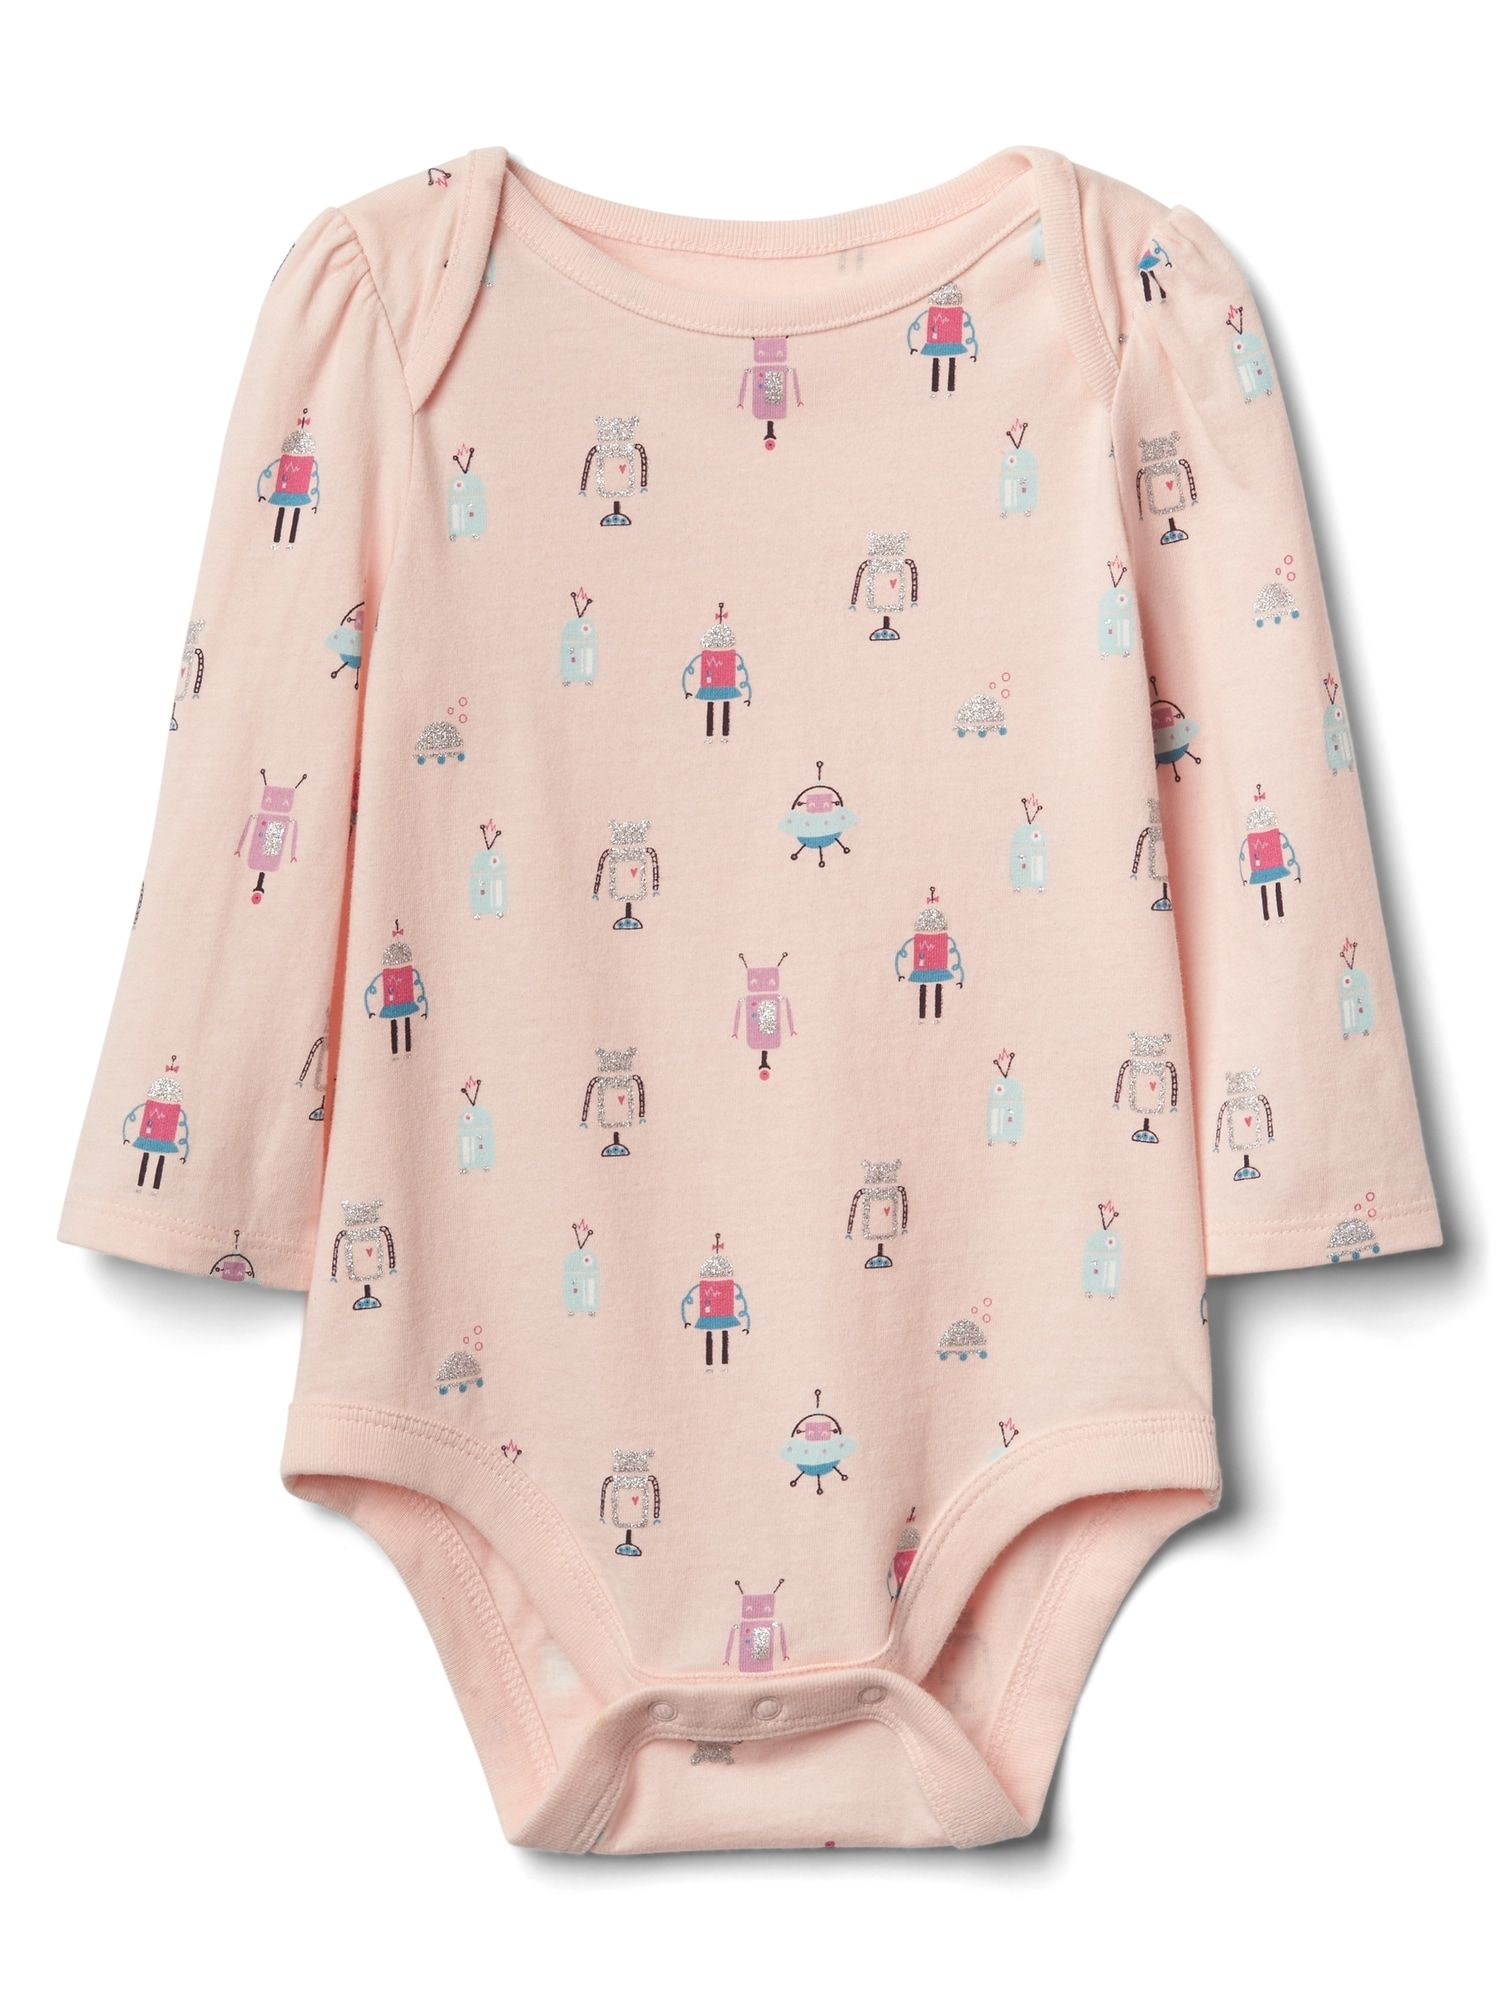 Print long sleeve bodysuit Gap Wyatt Everly LaVon